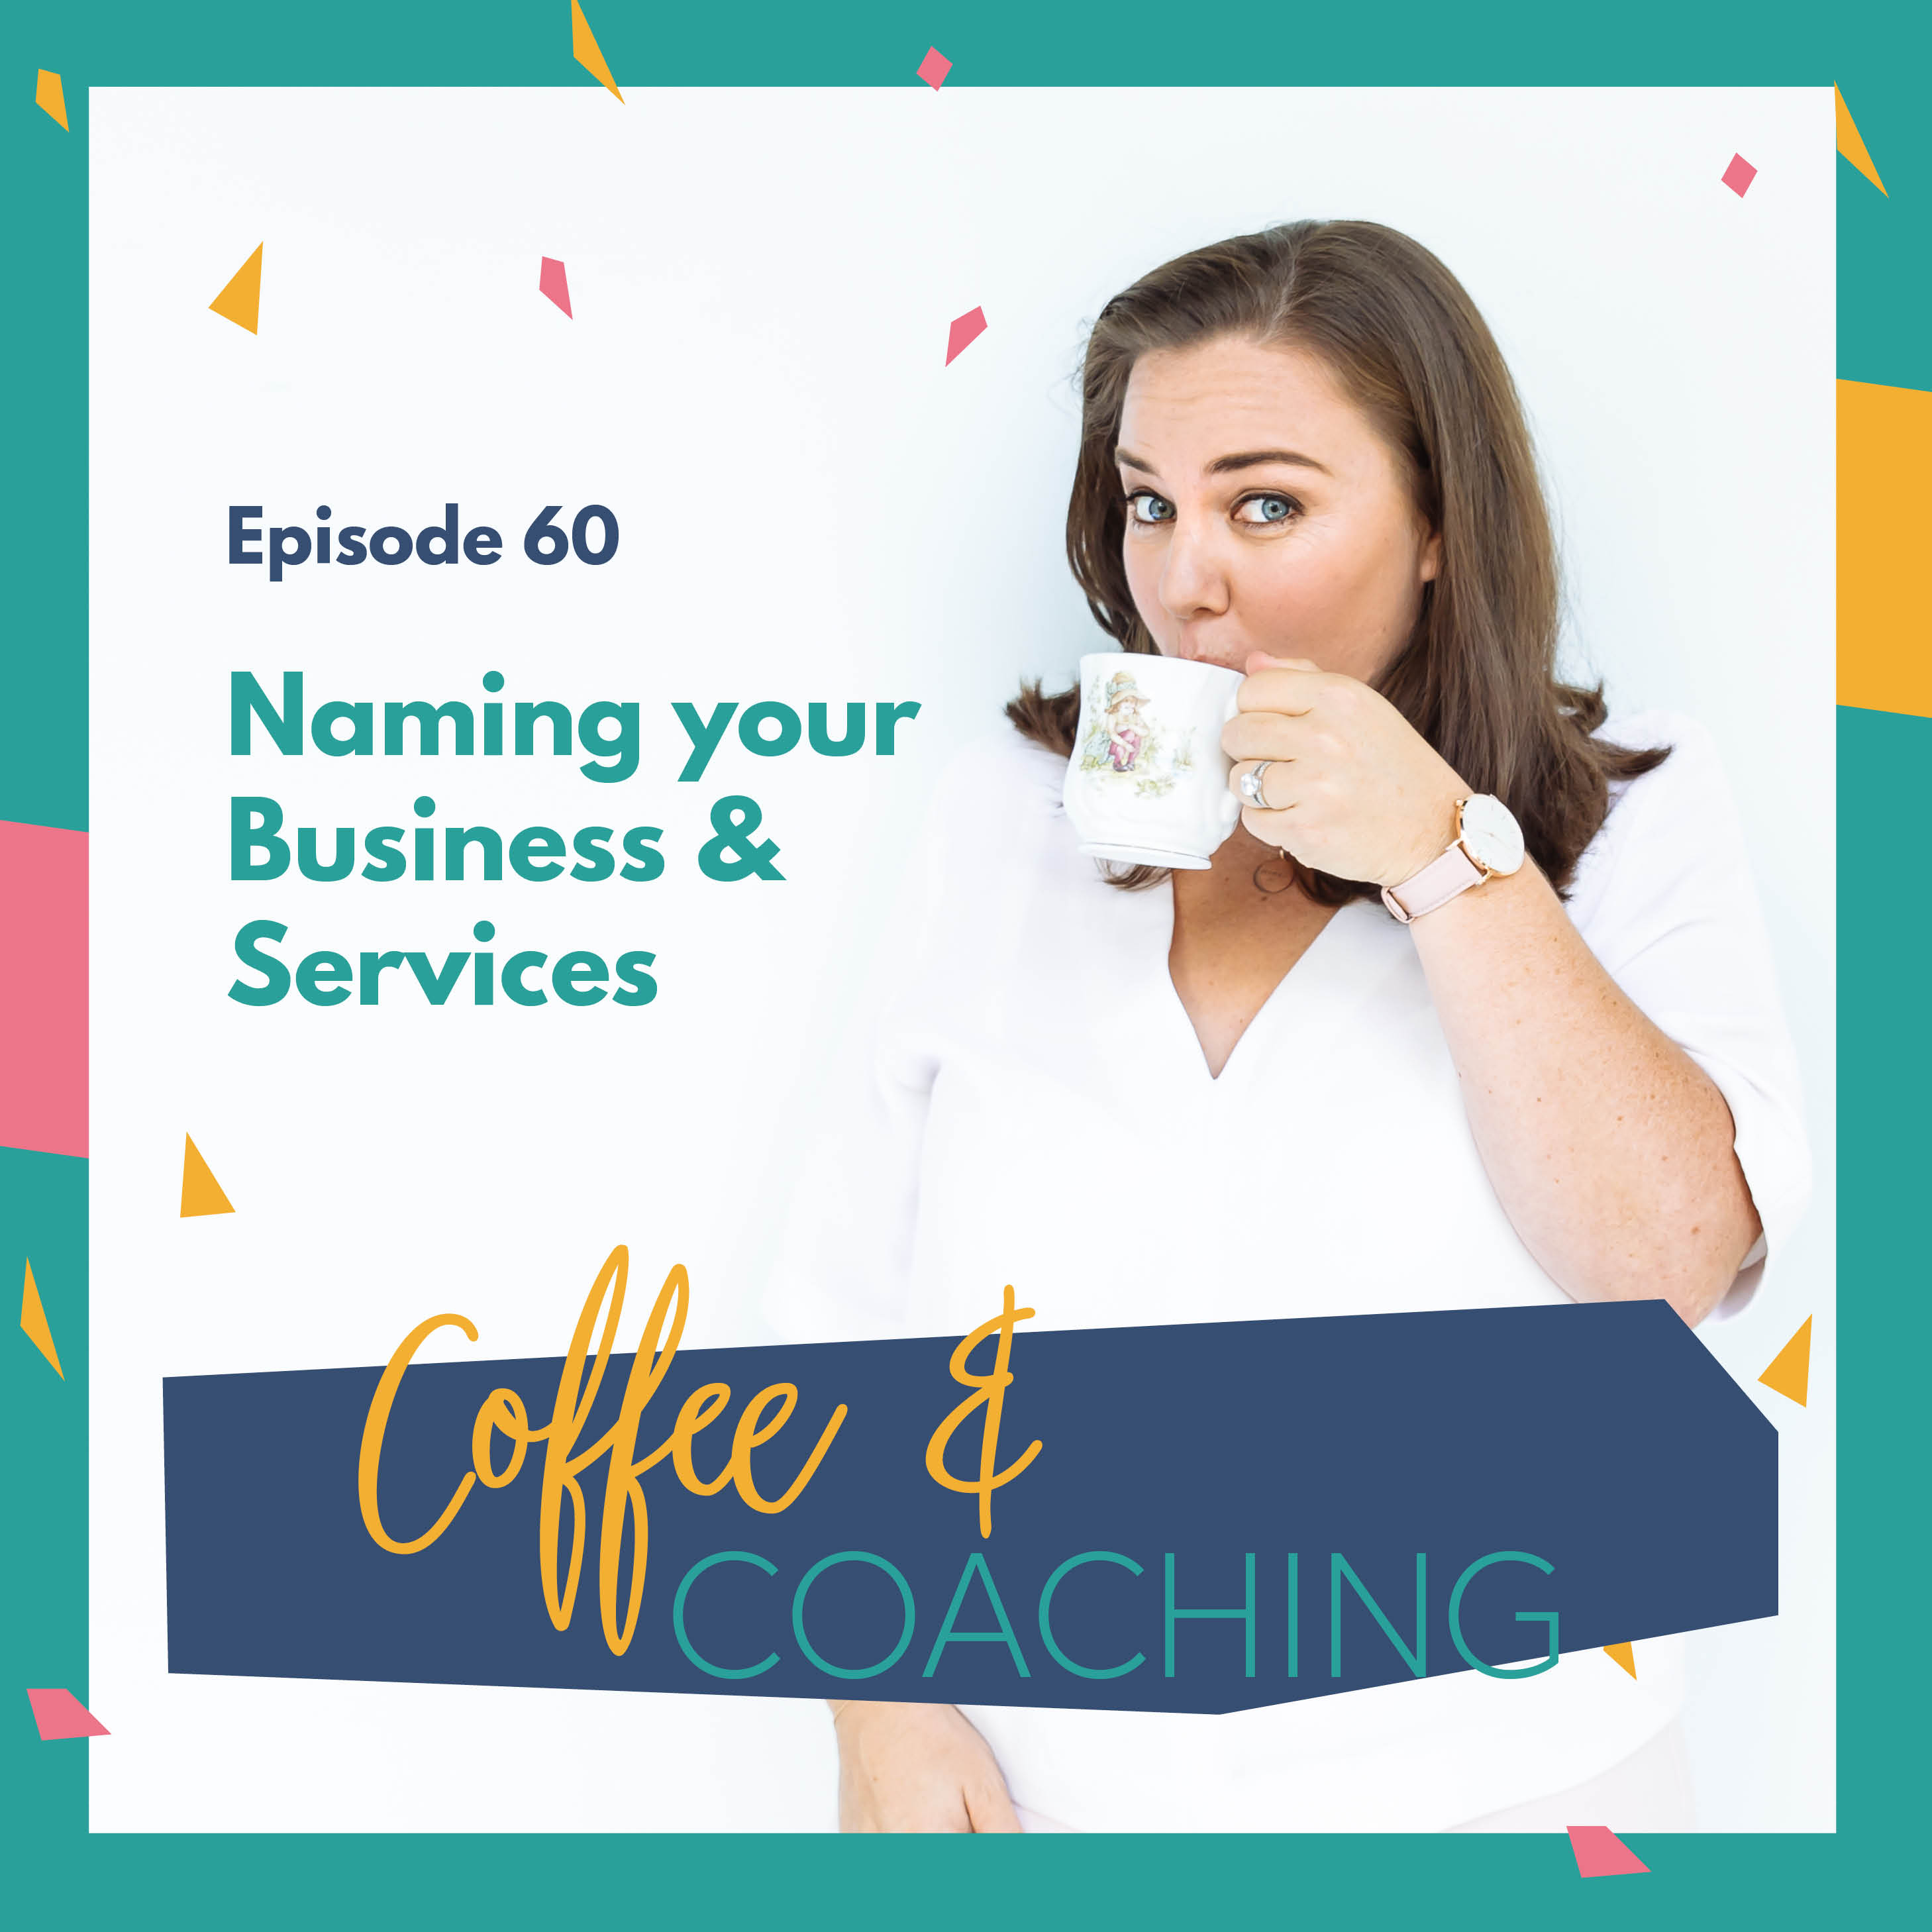 Artwork for 60: Coffee & Coaching - Naming Your Business & Services